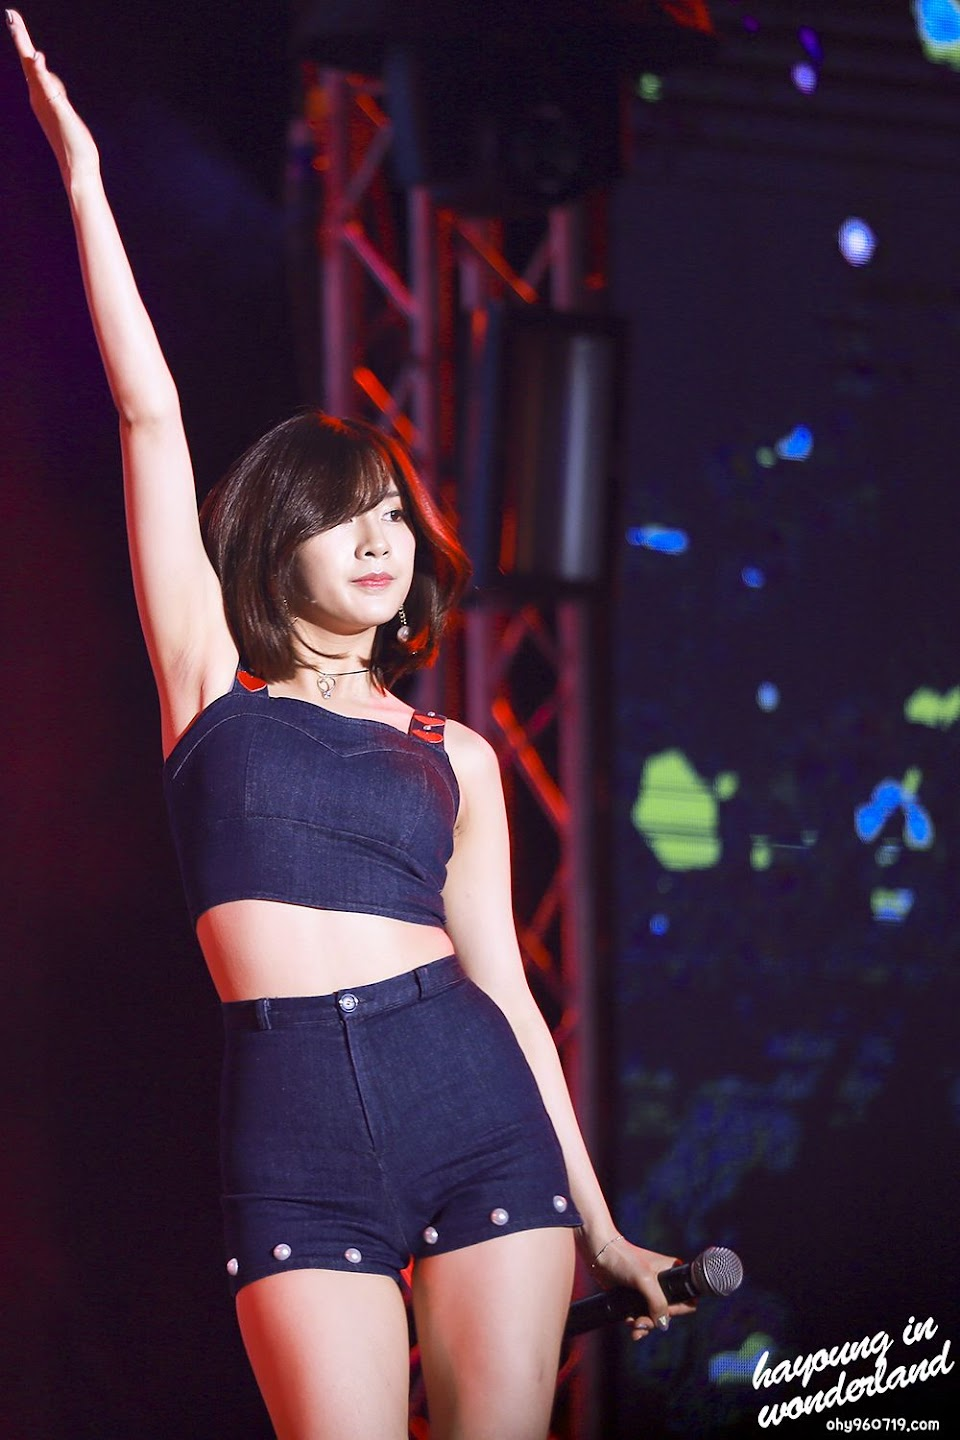 hayoung body 9